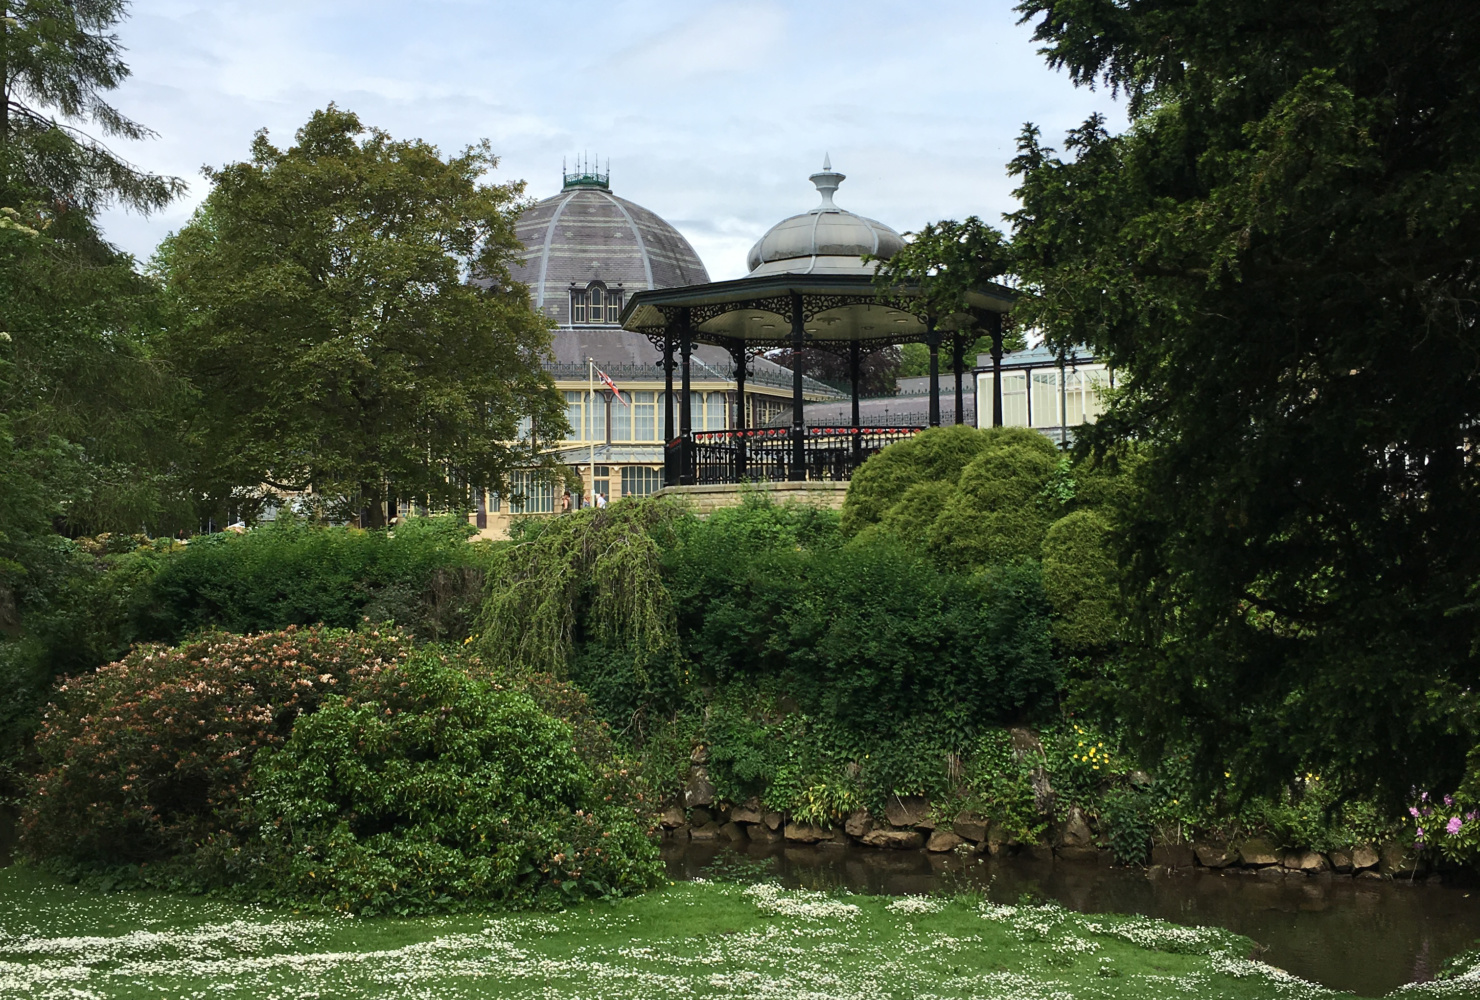 Buxton Pavilion Gardens, Buxton, Derbyshire. Staycation Inspiration by Malvern Garden Buildings